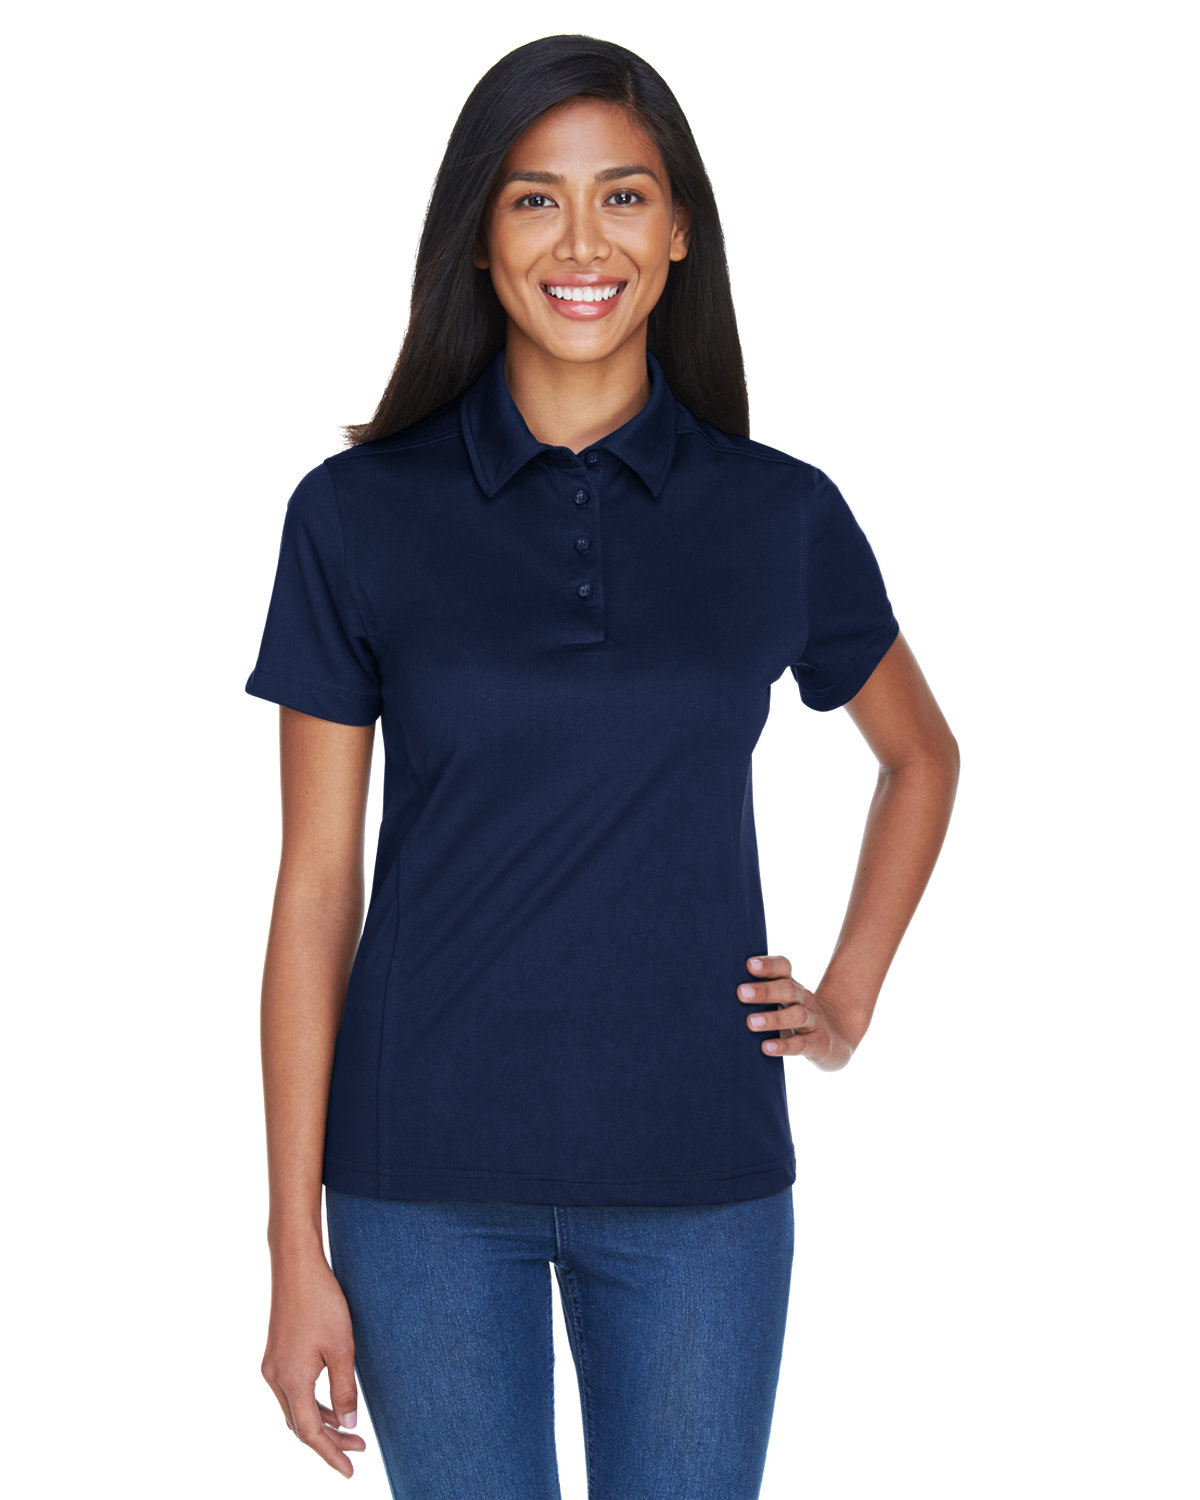 Extreme Ladies' Eperformance™ Shift Snag Protection Plus Polo CLASSIC NAVY